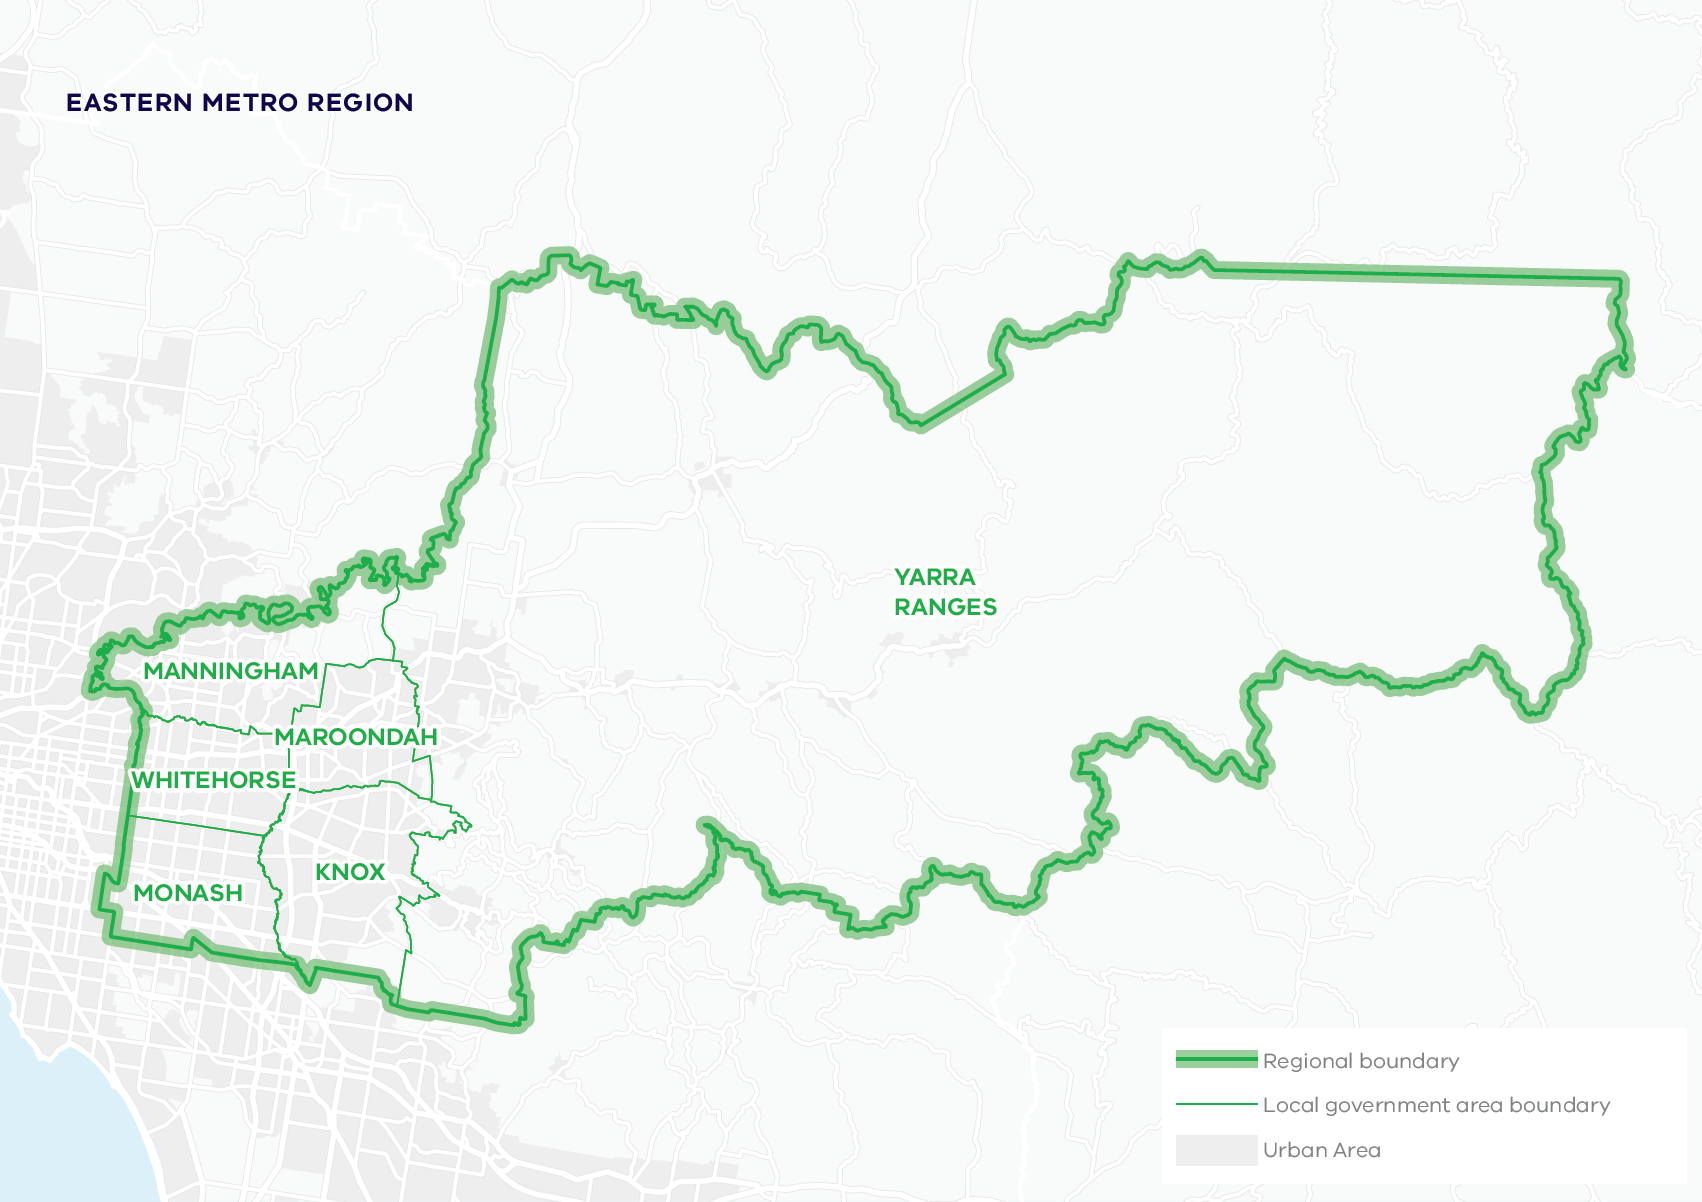 This map shows the boundary for the Eastern Metro region and local government areas. The Eastern Metro region includes Knox, Manningham, Maroondah, Monash, Whitehorse and Yarra Ranges local government areas.